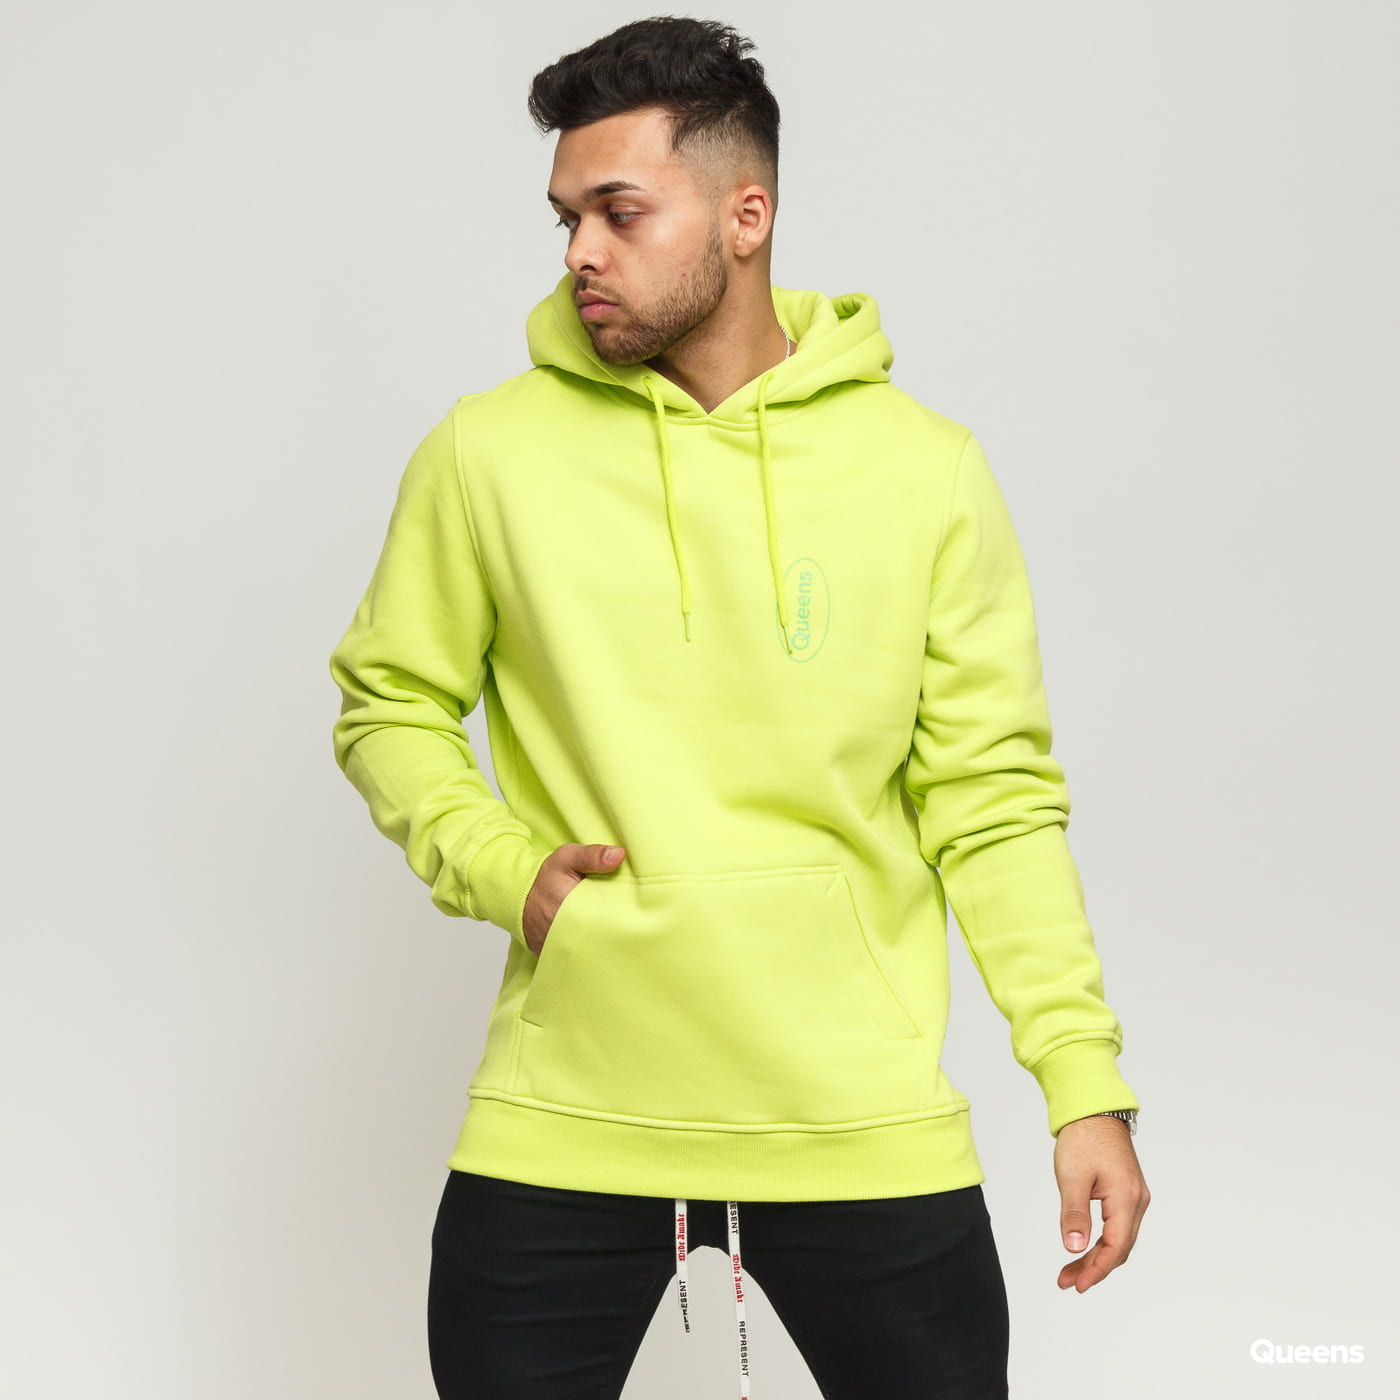 Queens Workwear Logo Hoodie yellow green